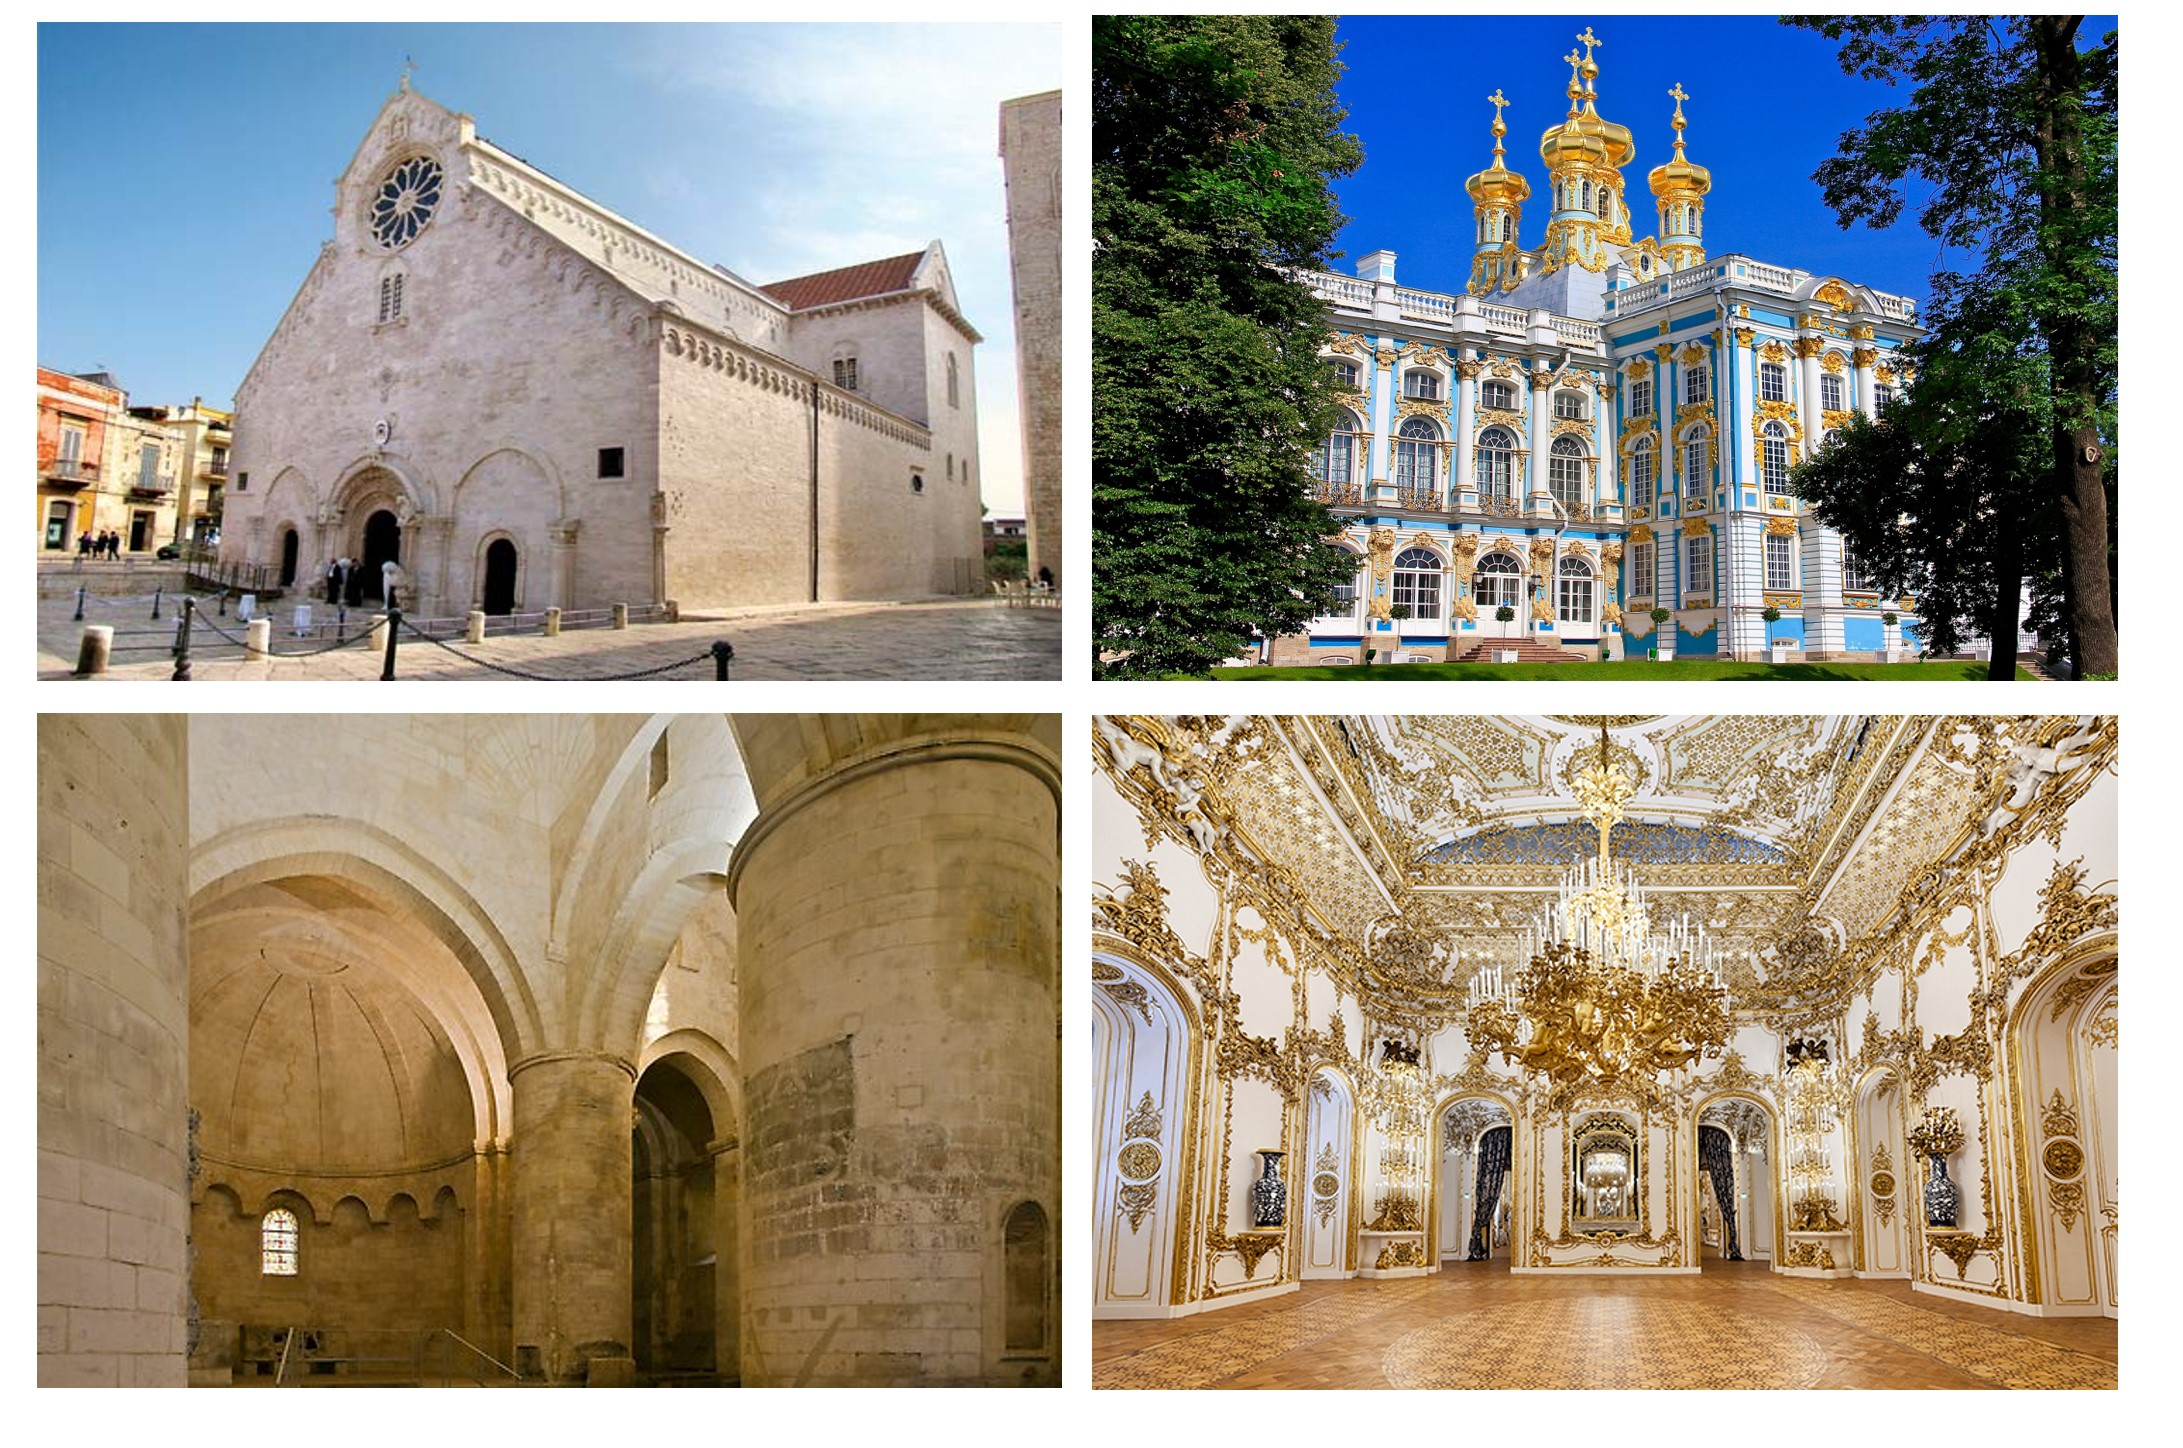 VOLUMINOUS AND TEXTURAL Strong, simple volumes of Romanesque architecture contrast with the richly decorated surfaces of Rococo architecture.